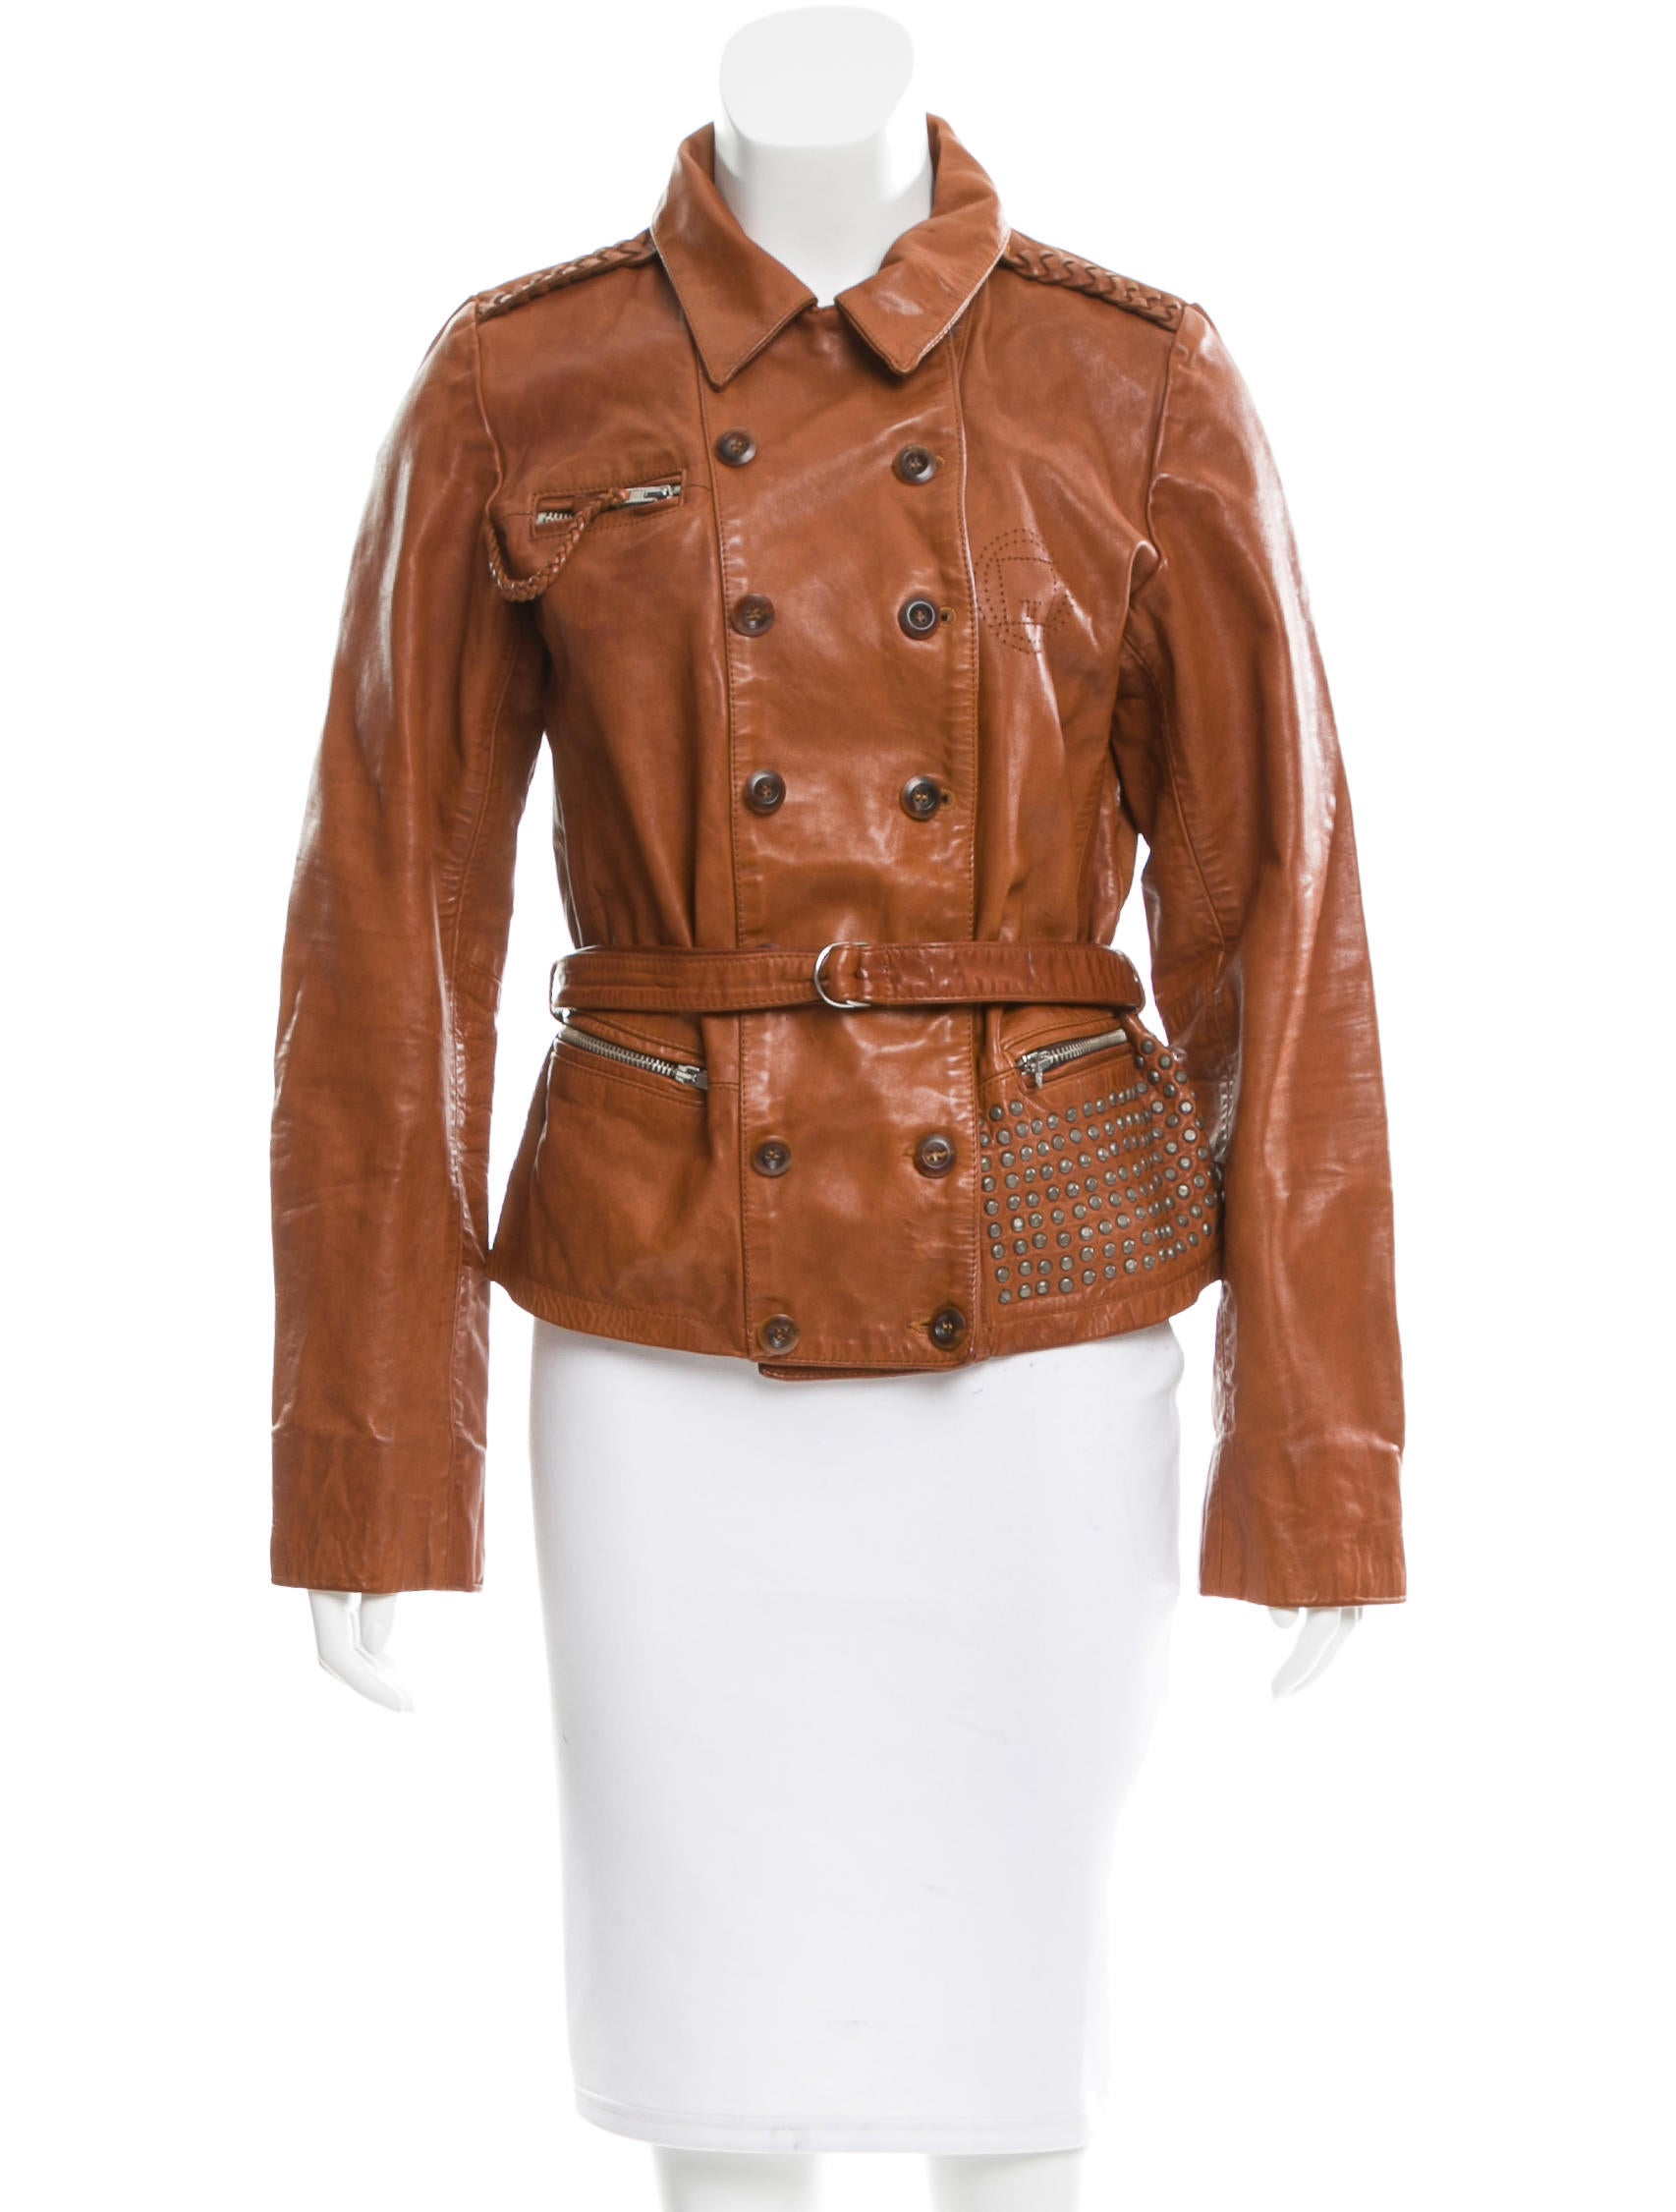 Golden goose studded leather jacket clothing wg522558 for Leather jacket and shirt